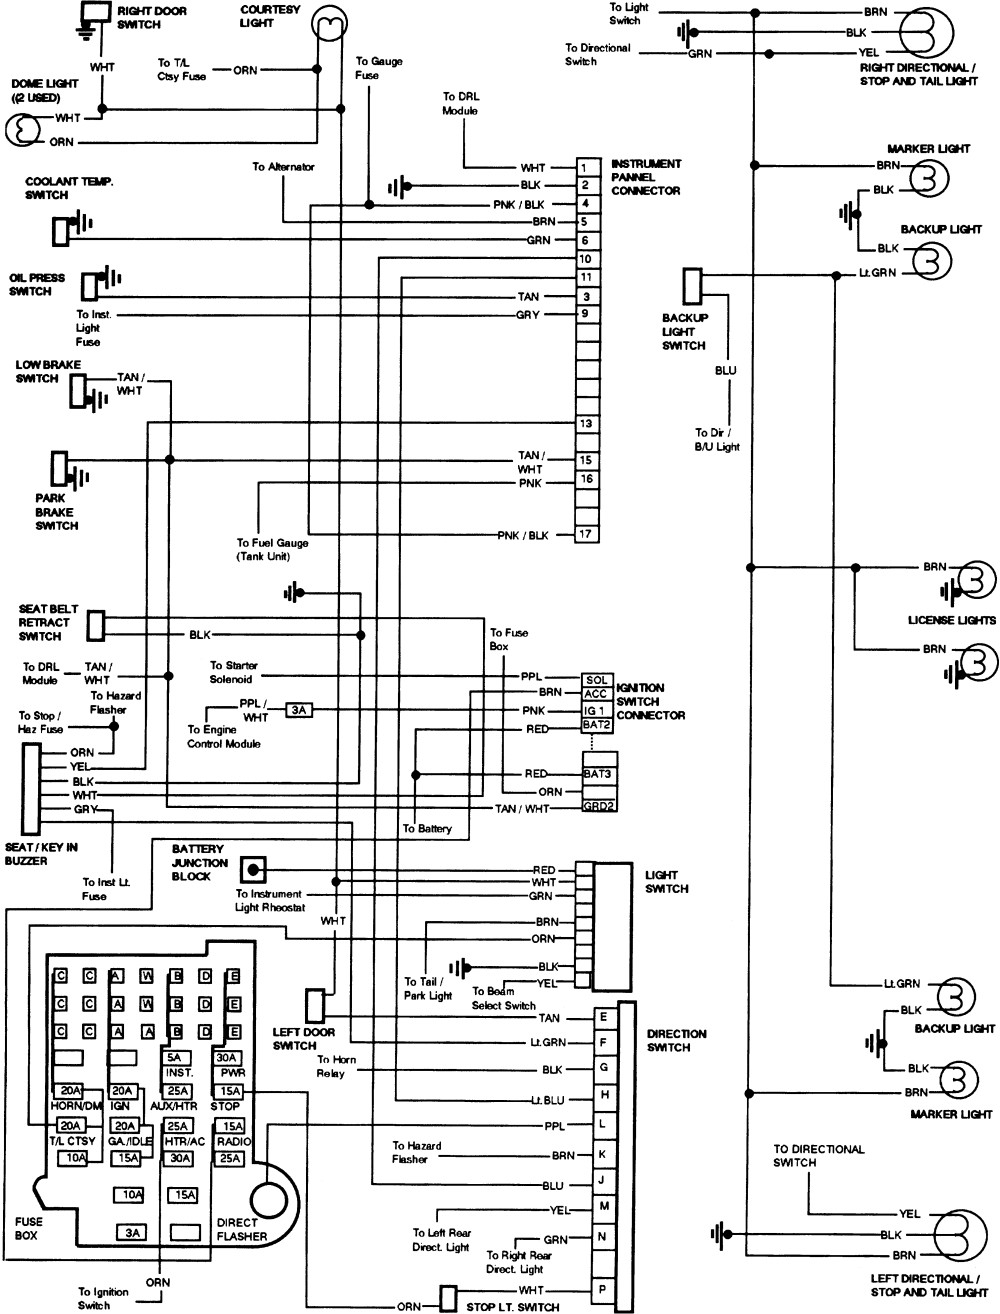 1984 chevy s10 wiring diagram - wiring diagrams site host-star -  host-star.geasparquet.it  geas parquet